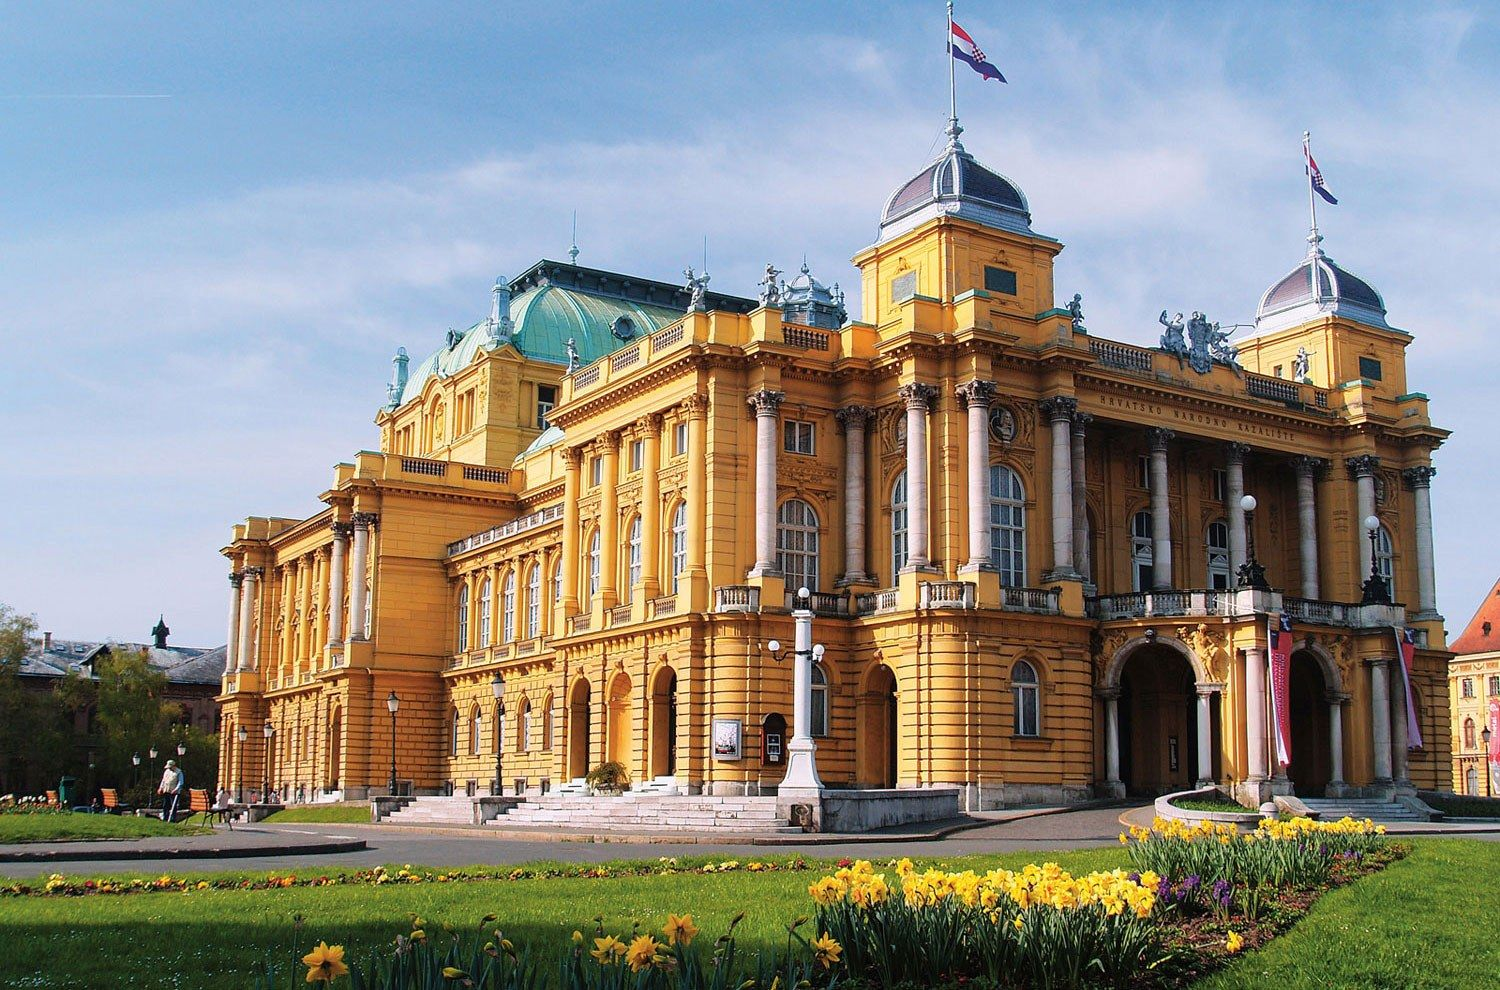 Have a perfect  #ZAGREB CITY BREAK this autumn with us!  http://tourcroatia.co.uk/package/zagreb-city-break-5-days/Croatia's vibrant capital of Zagreb is getting more and more tourists every year. Whether you feel like exploring its Medieval streets and churches, or you just want to sit in a nice restaurant and try the best of regional cuisine, this city has it all.